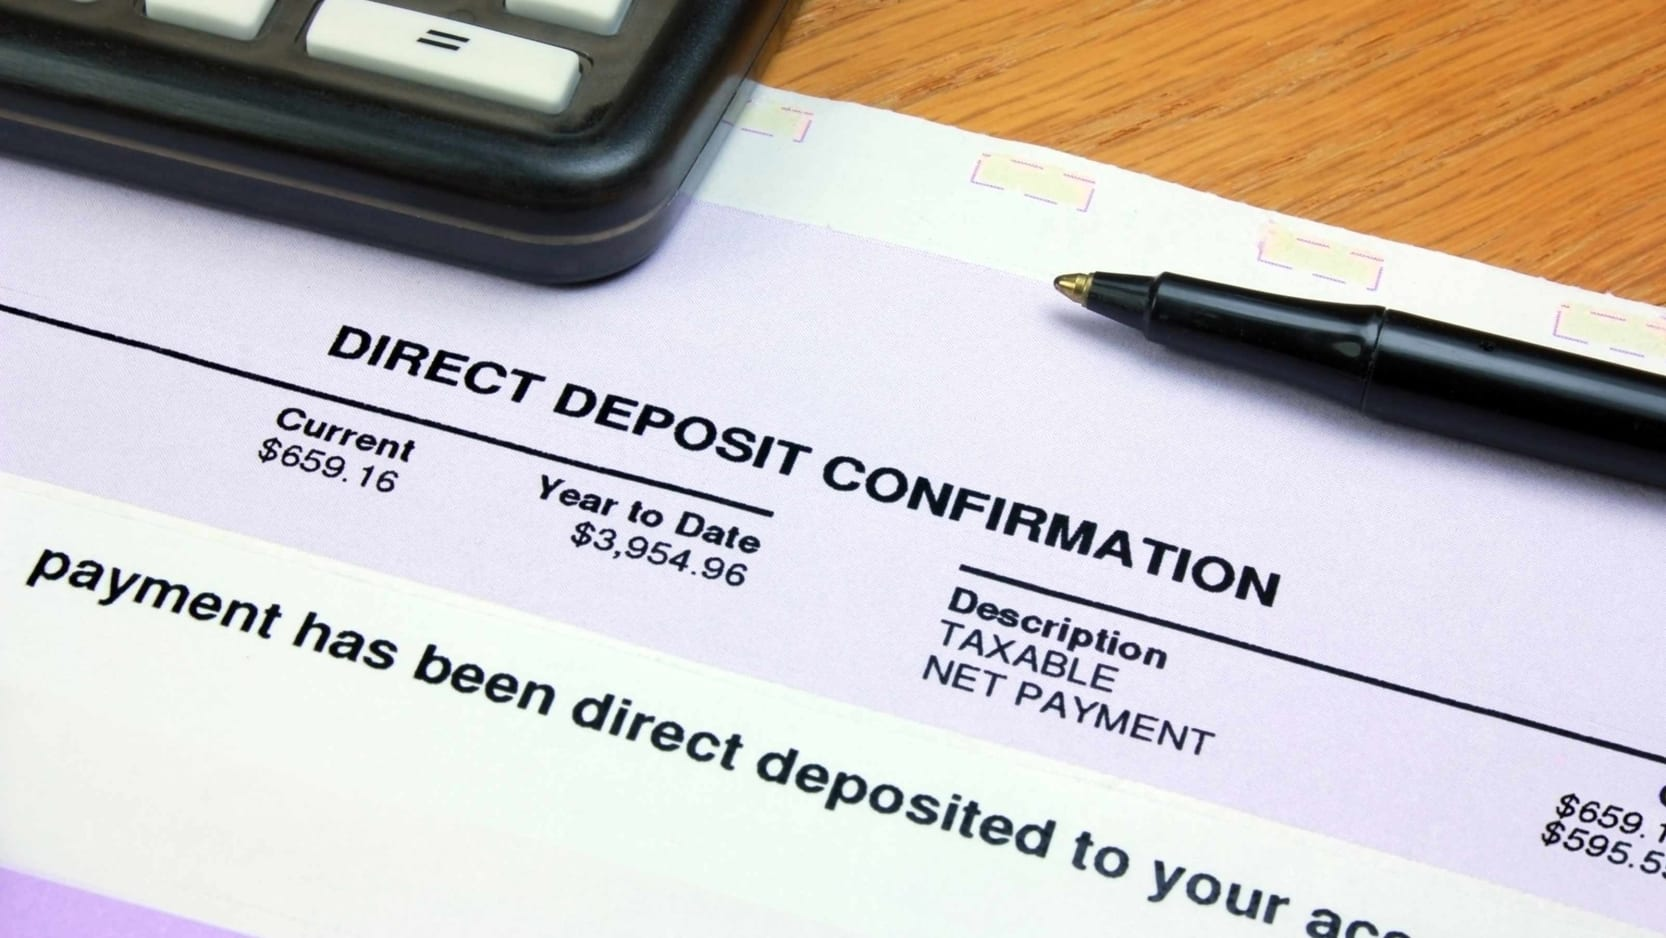 A pay stub showing direct deposit information.